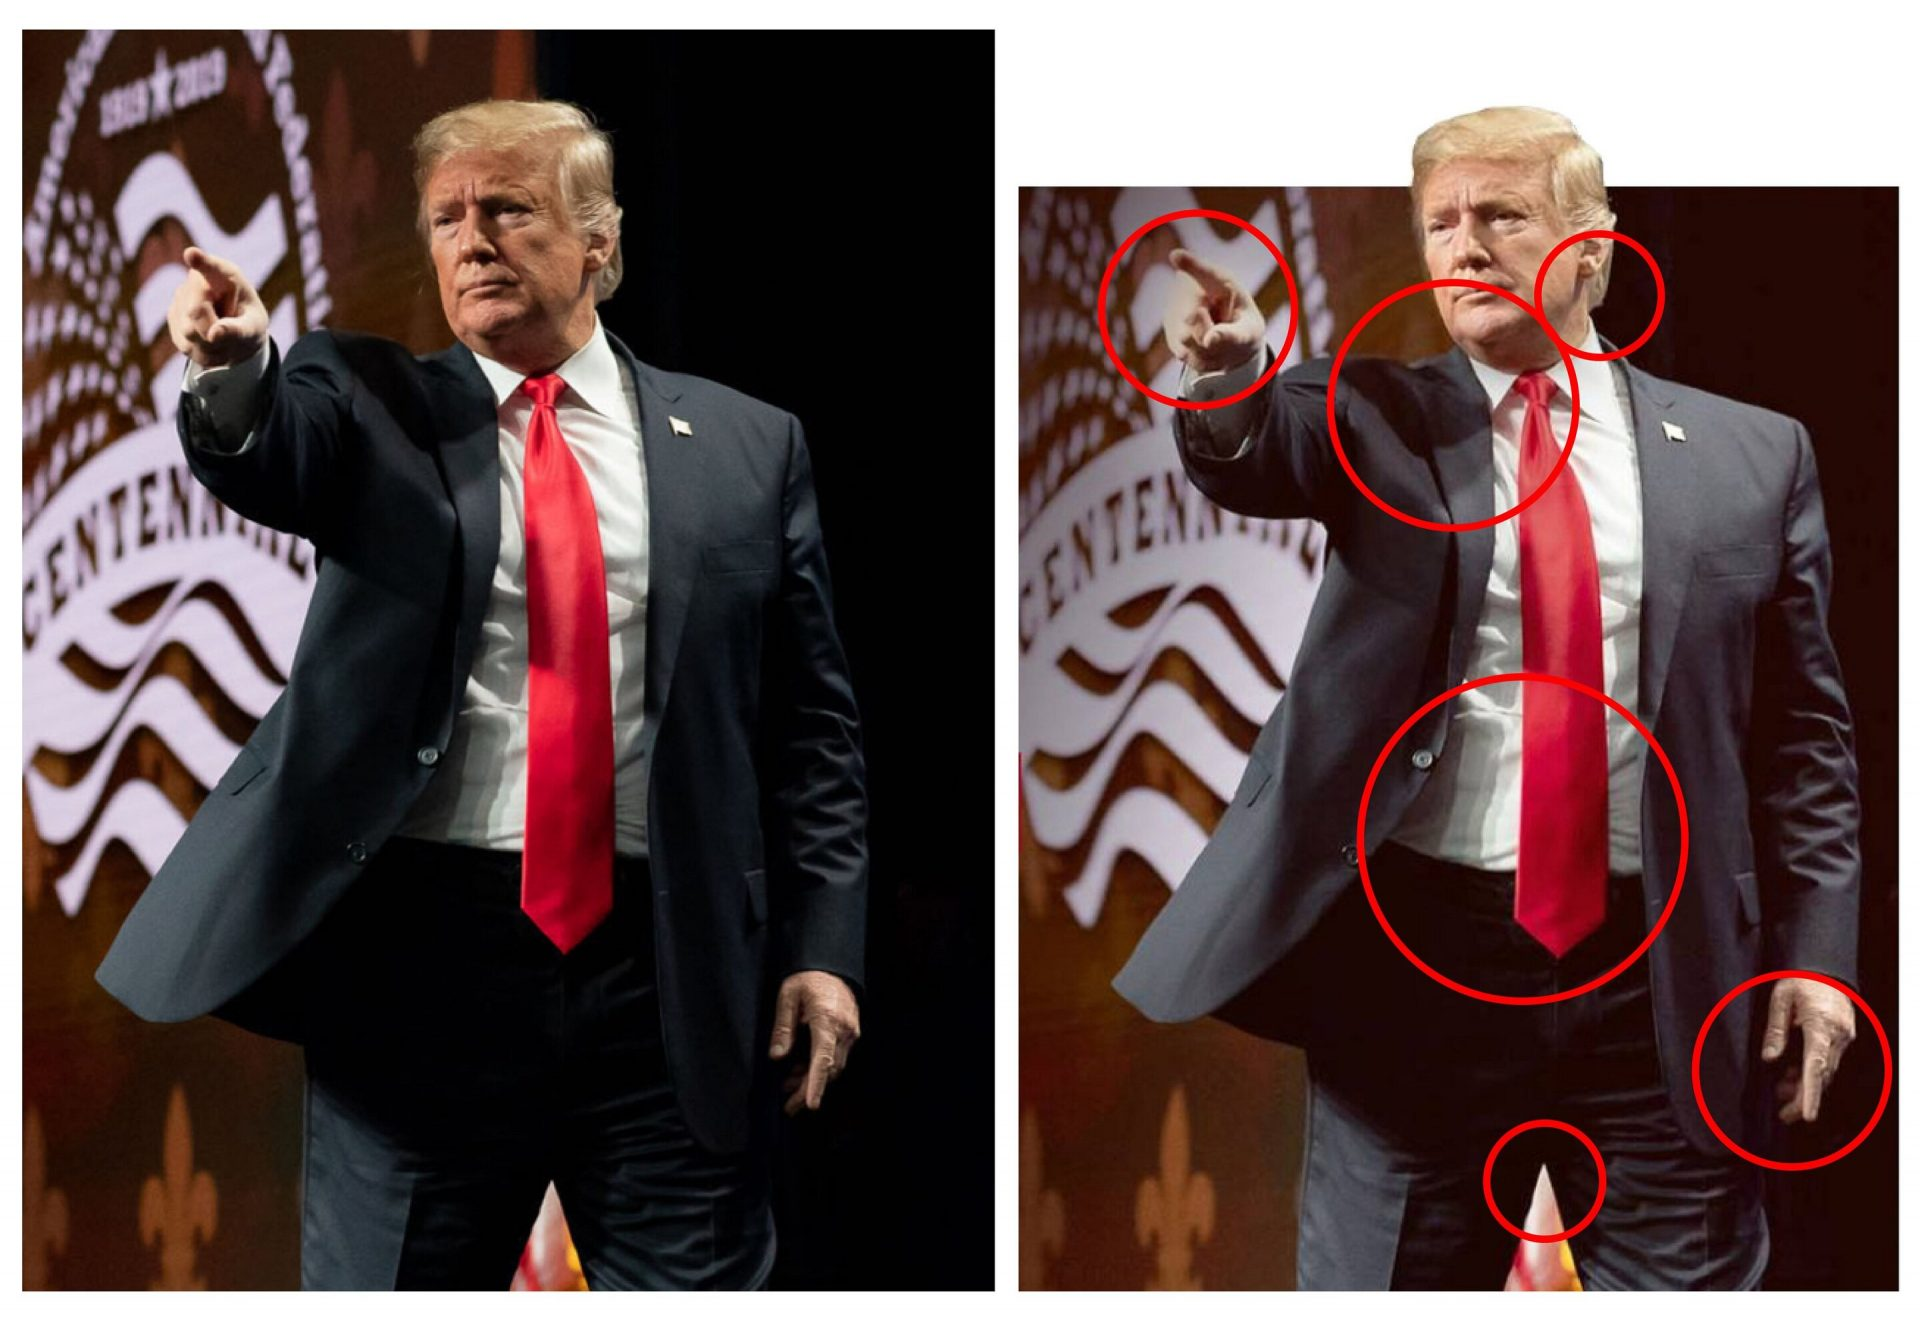 The original photo of US President Donald Trump (left) and the edited version of him (right) that he shared on his official Instagram and Facebook accounts. (Image: Dr T.J. Thomson, QUT's Digital Media Research Centre)